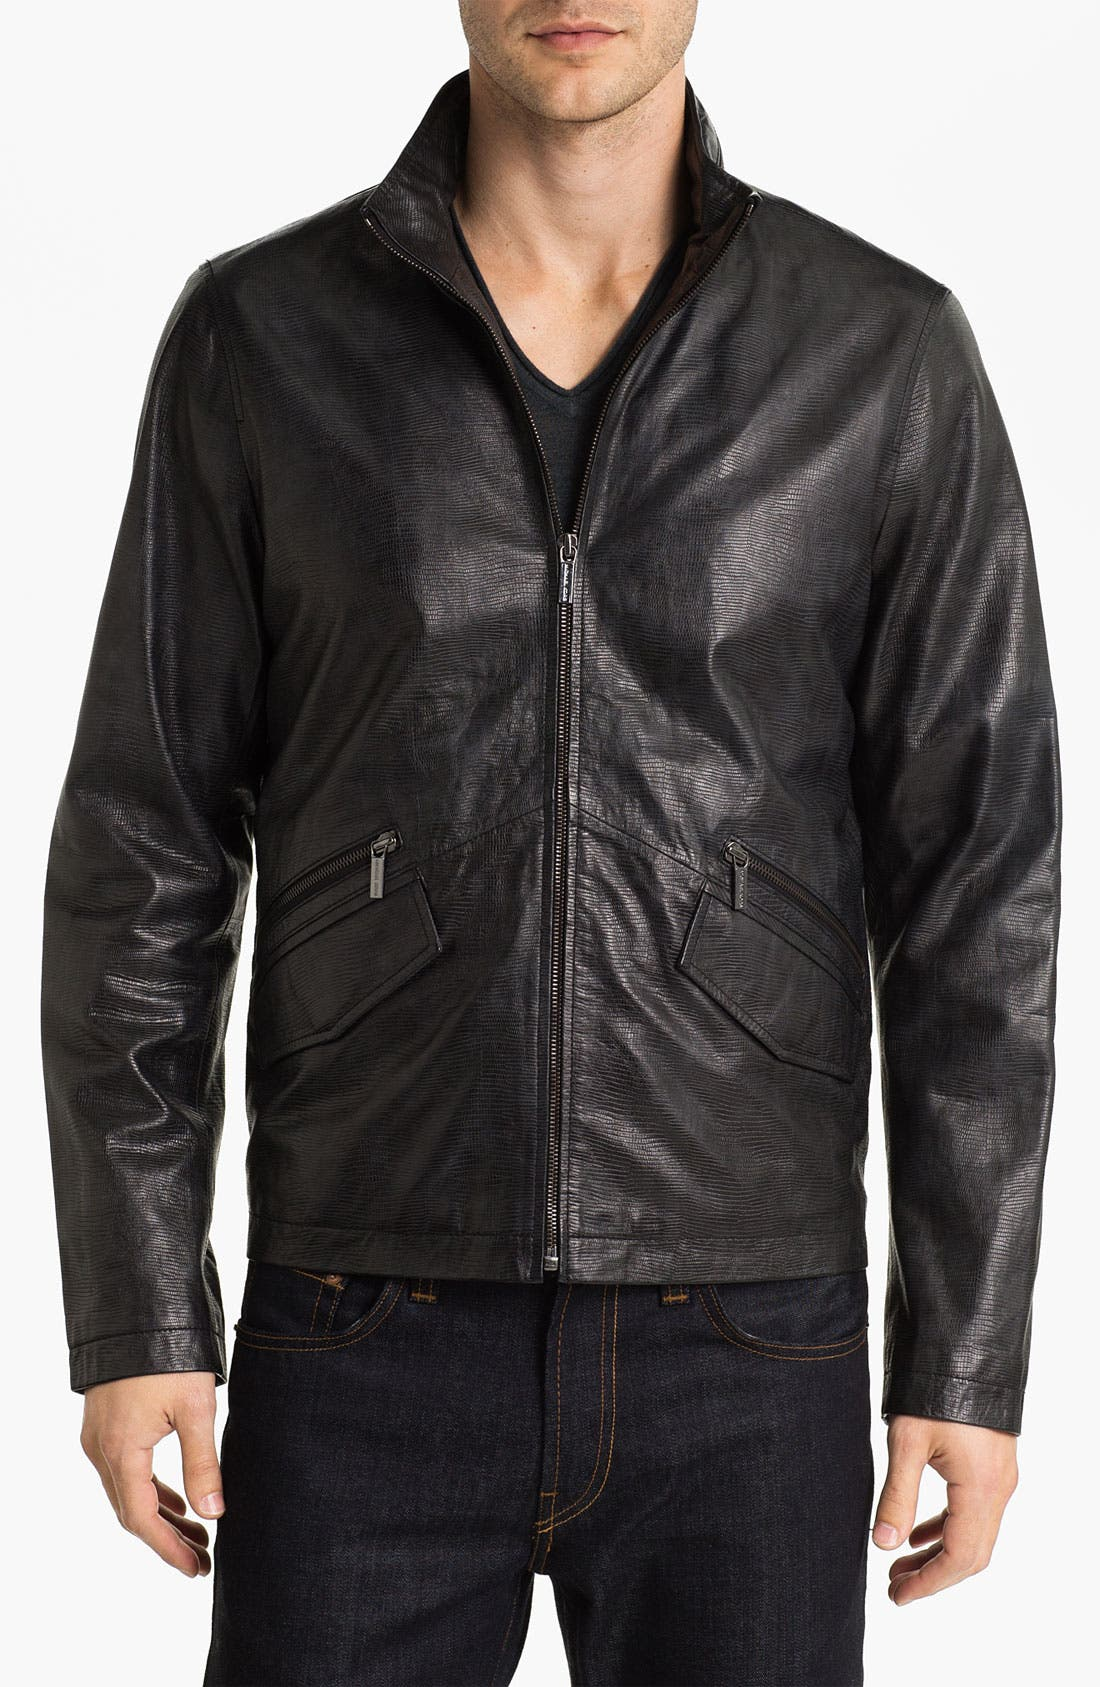 Main Image - Michael Kors Embossed Leather Jacket (Online Exclusive)